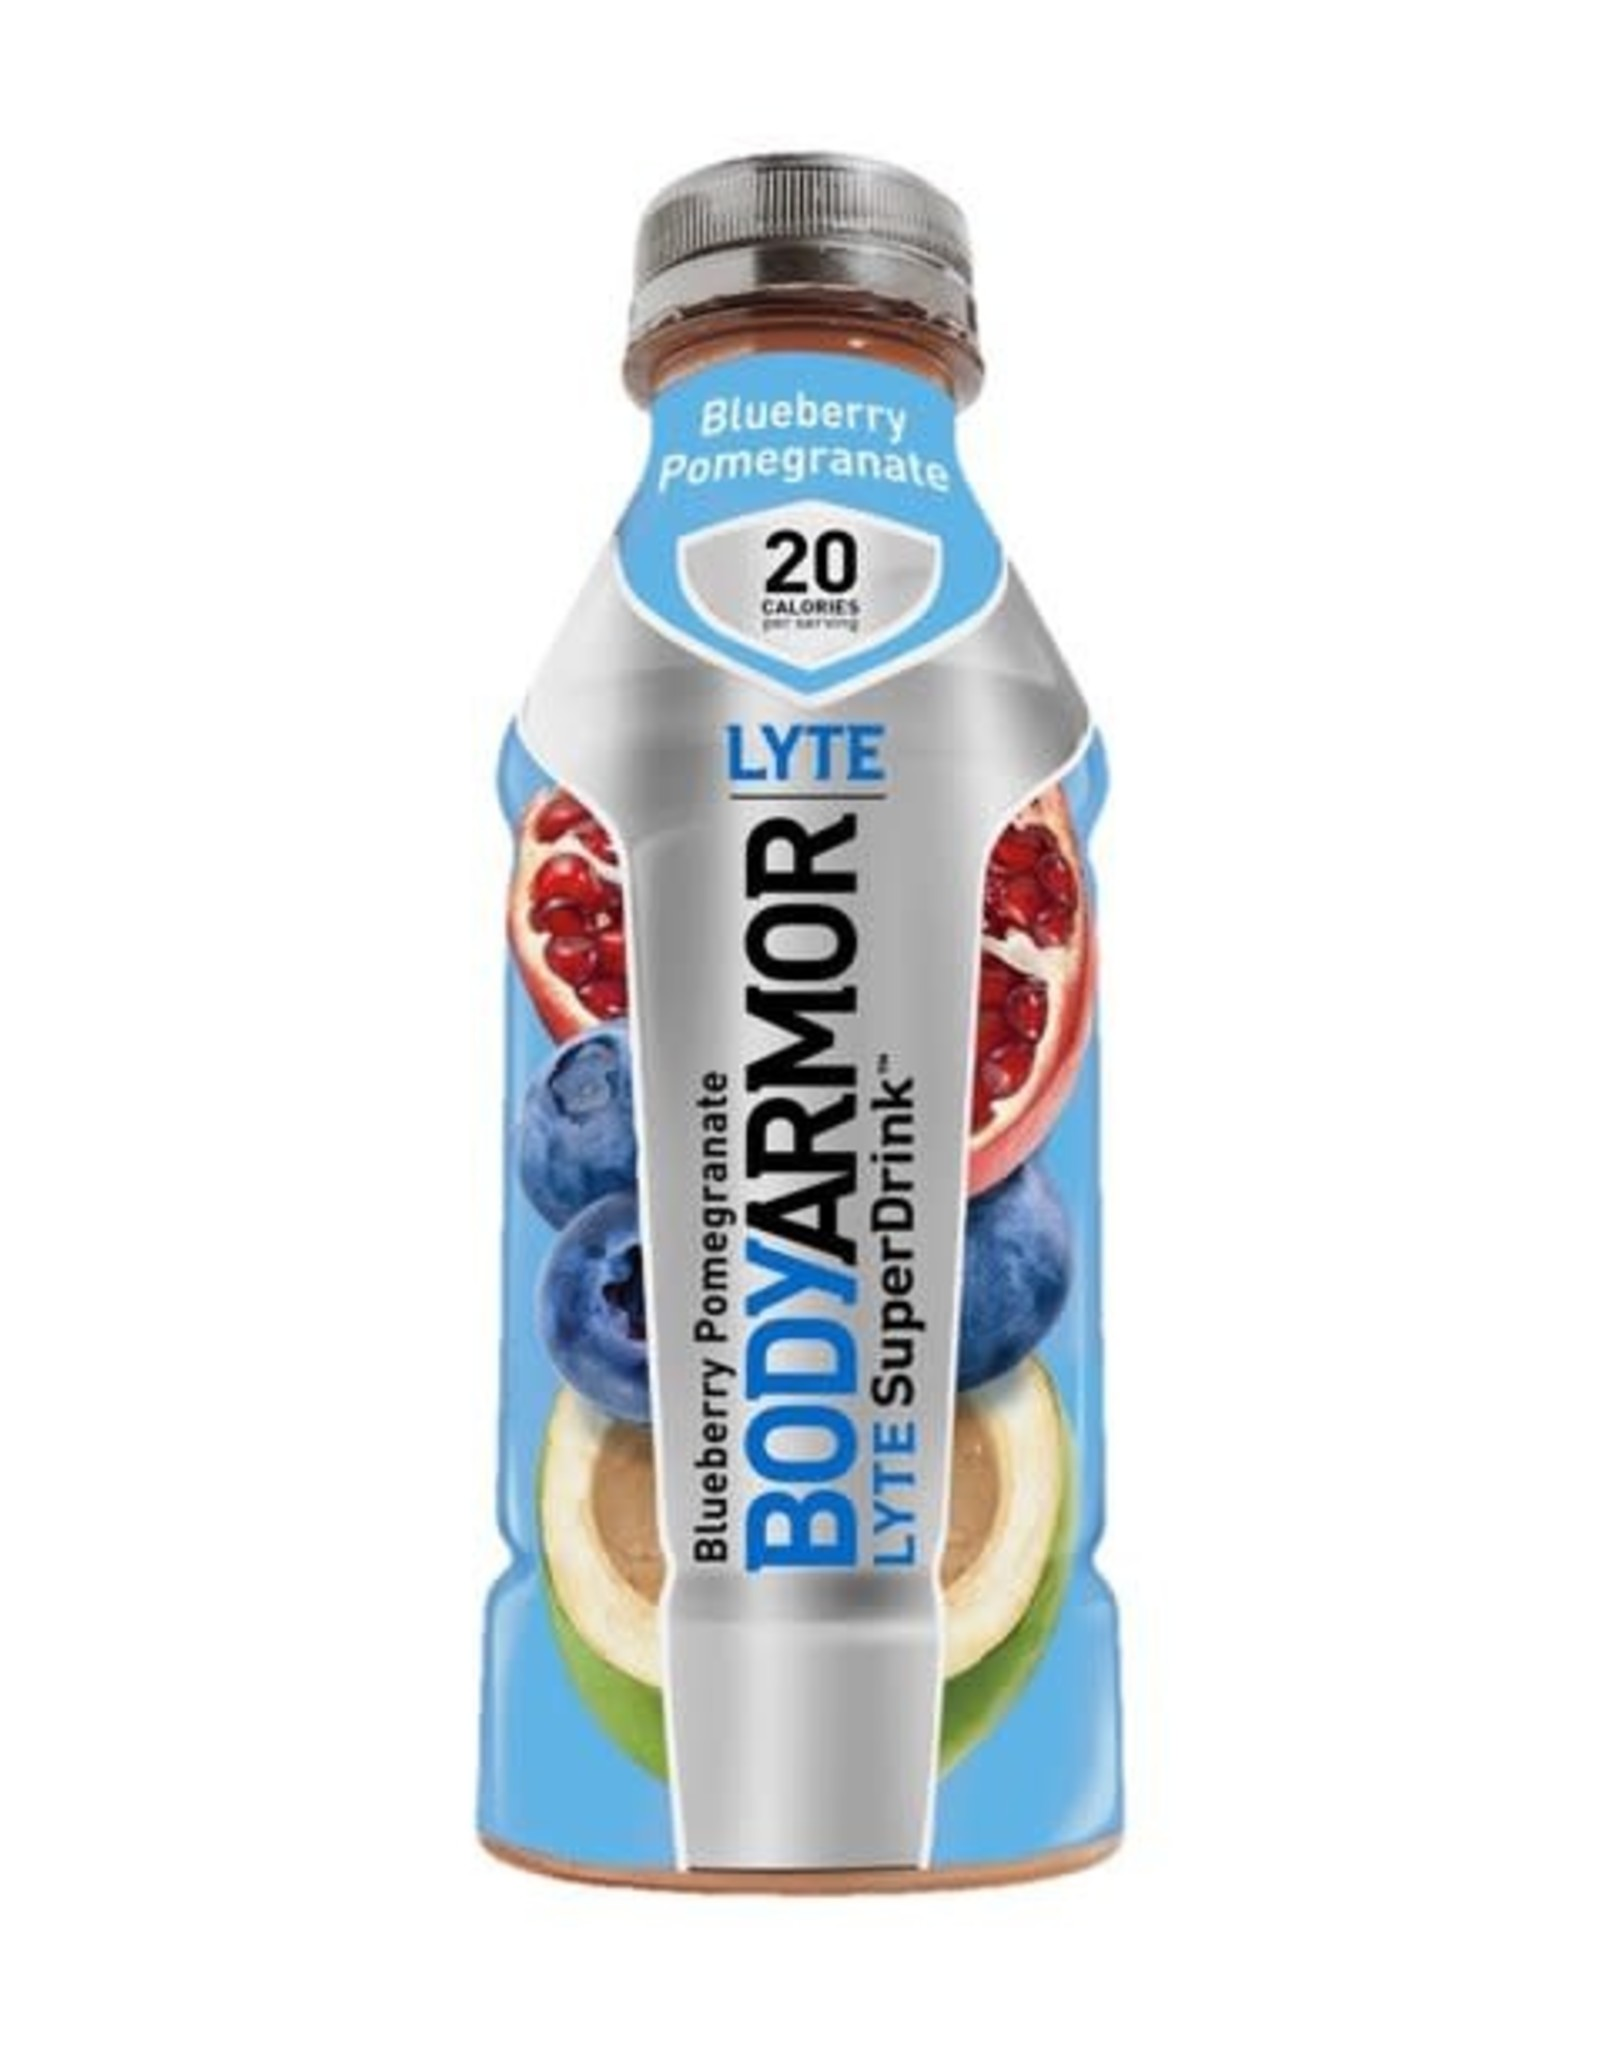 BodyArmor Superdrink BodyArmor Lyte Blueberry Pomegranate (16 oz.)